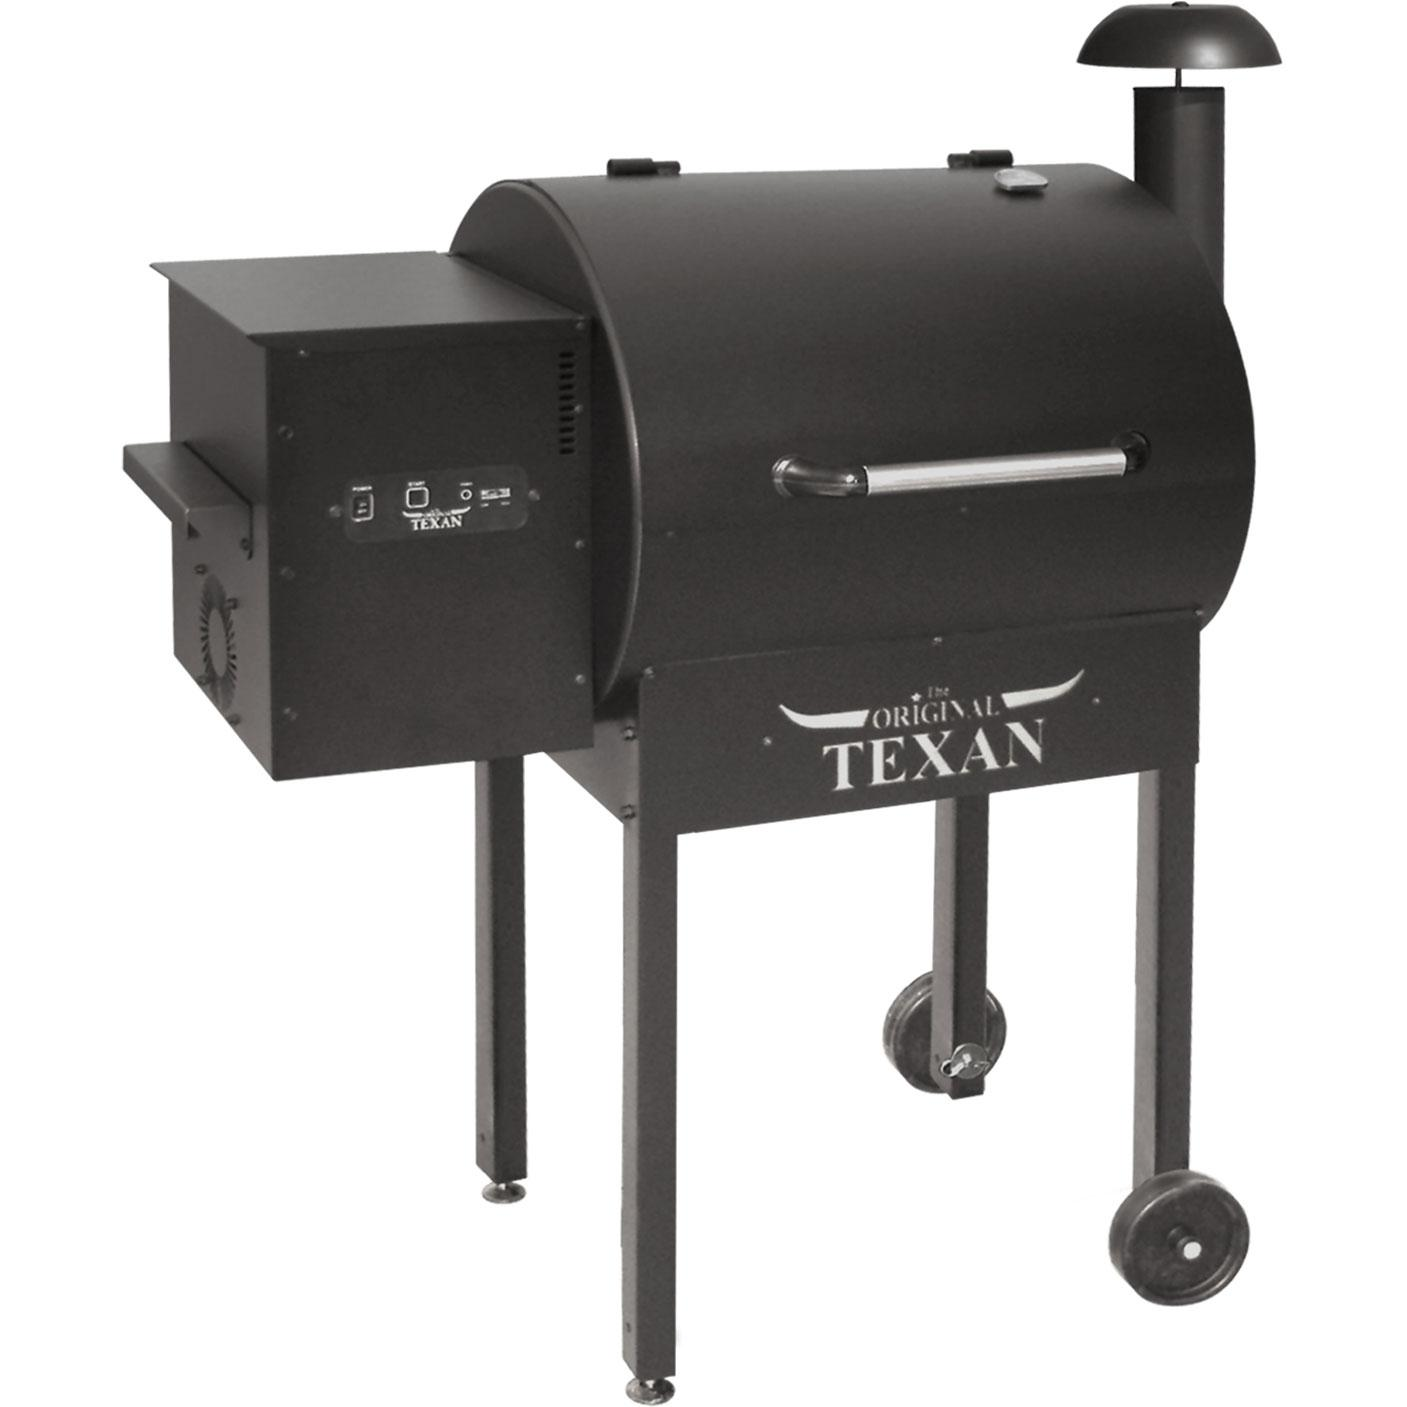 The Original Texan OT420 Wood Pellet Smoker Grill